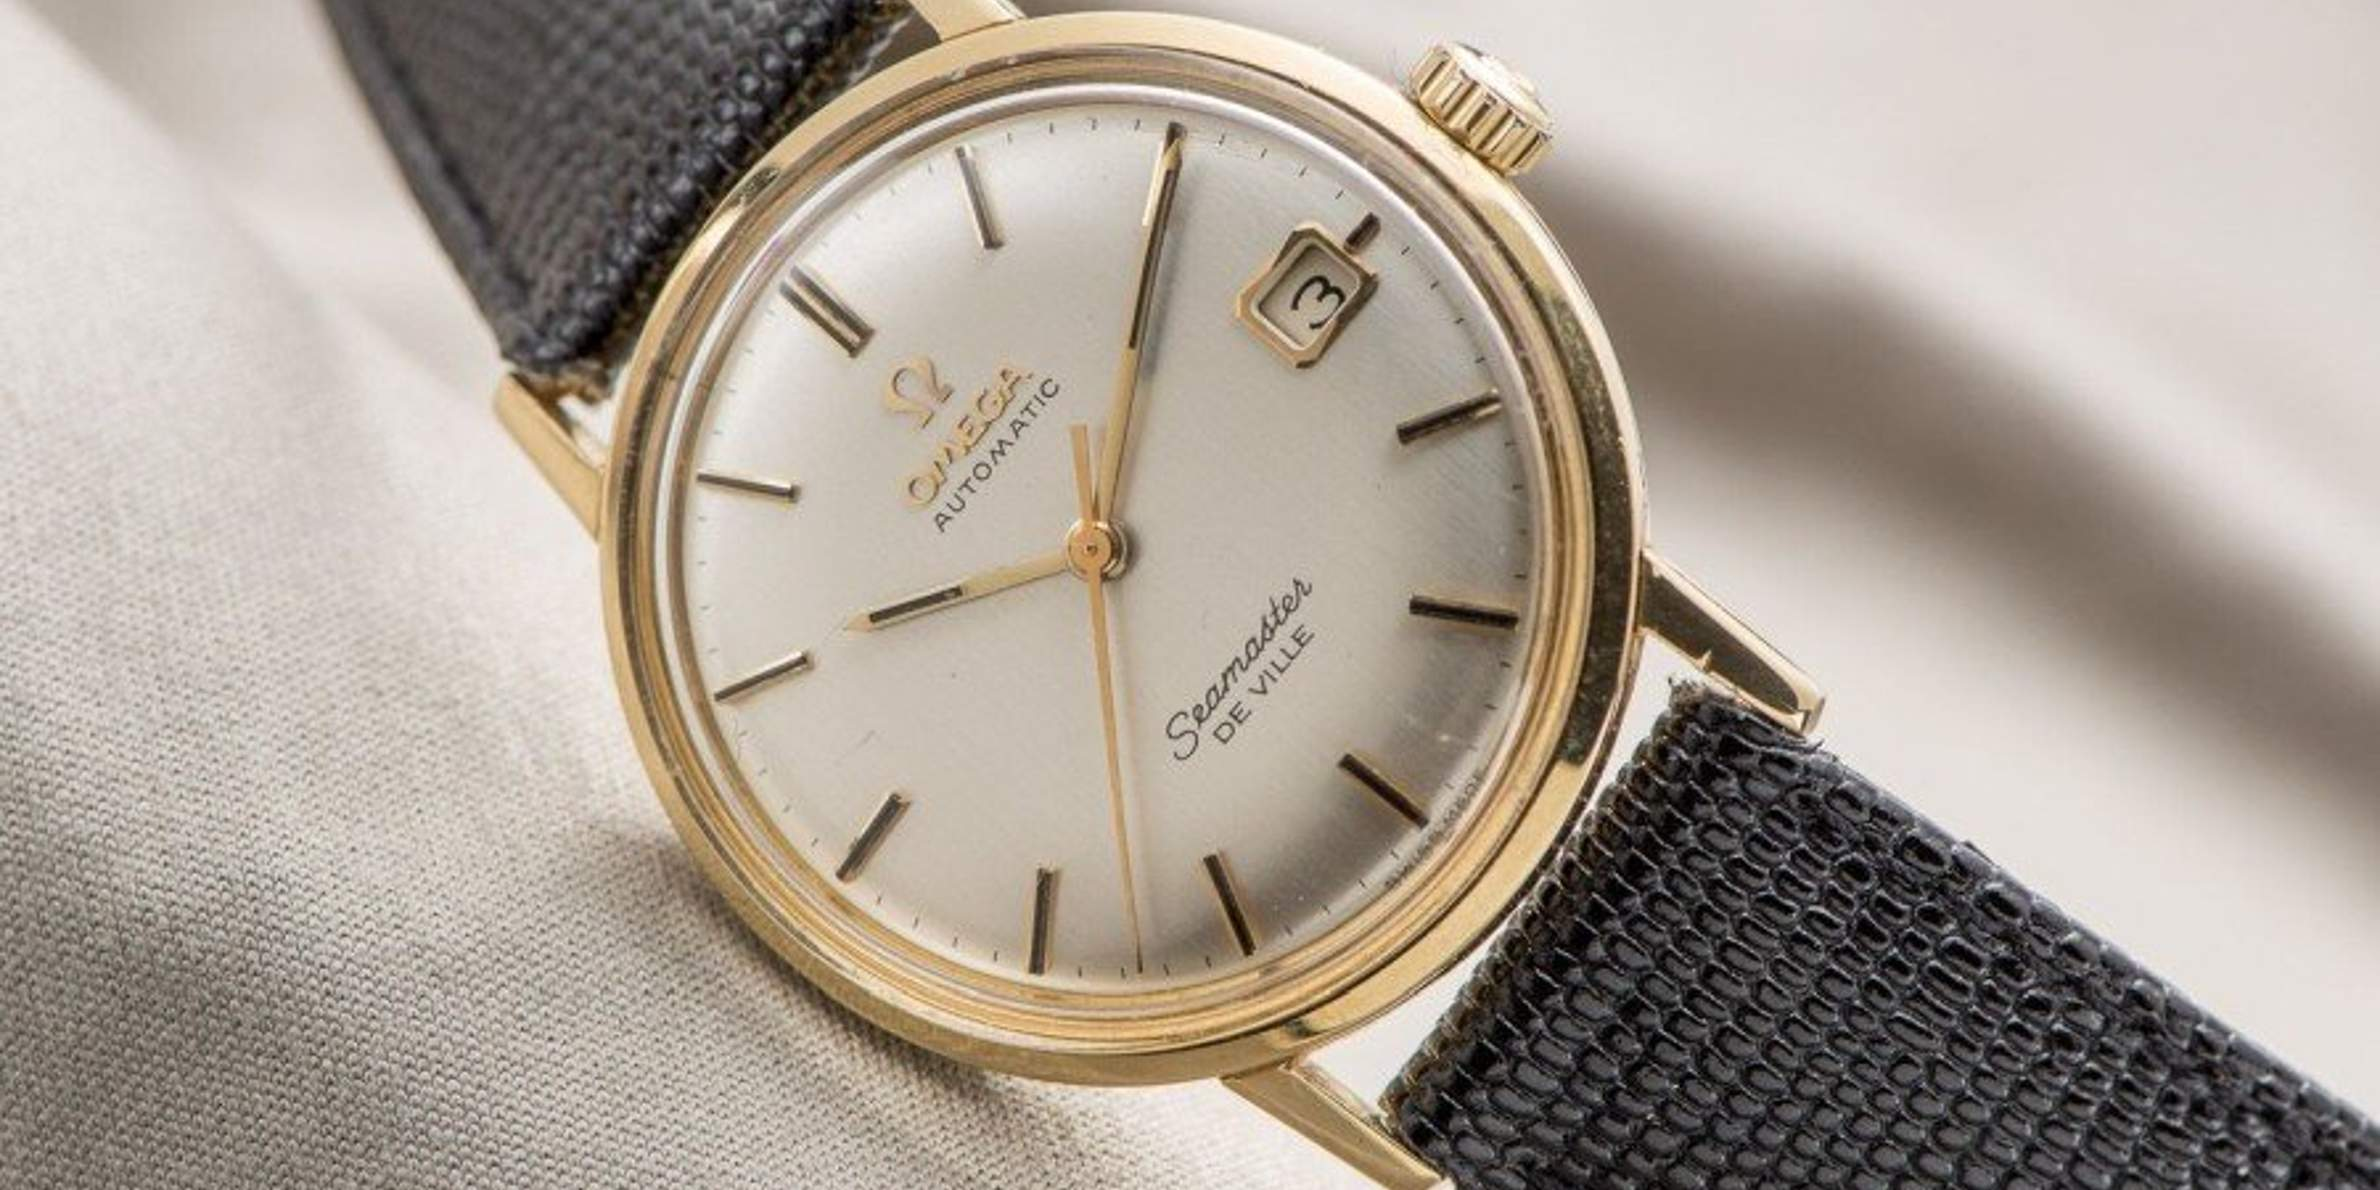 The perfect watch for special occasions: The Omega Seamaster De Ville